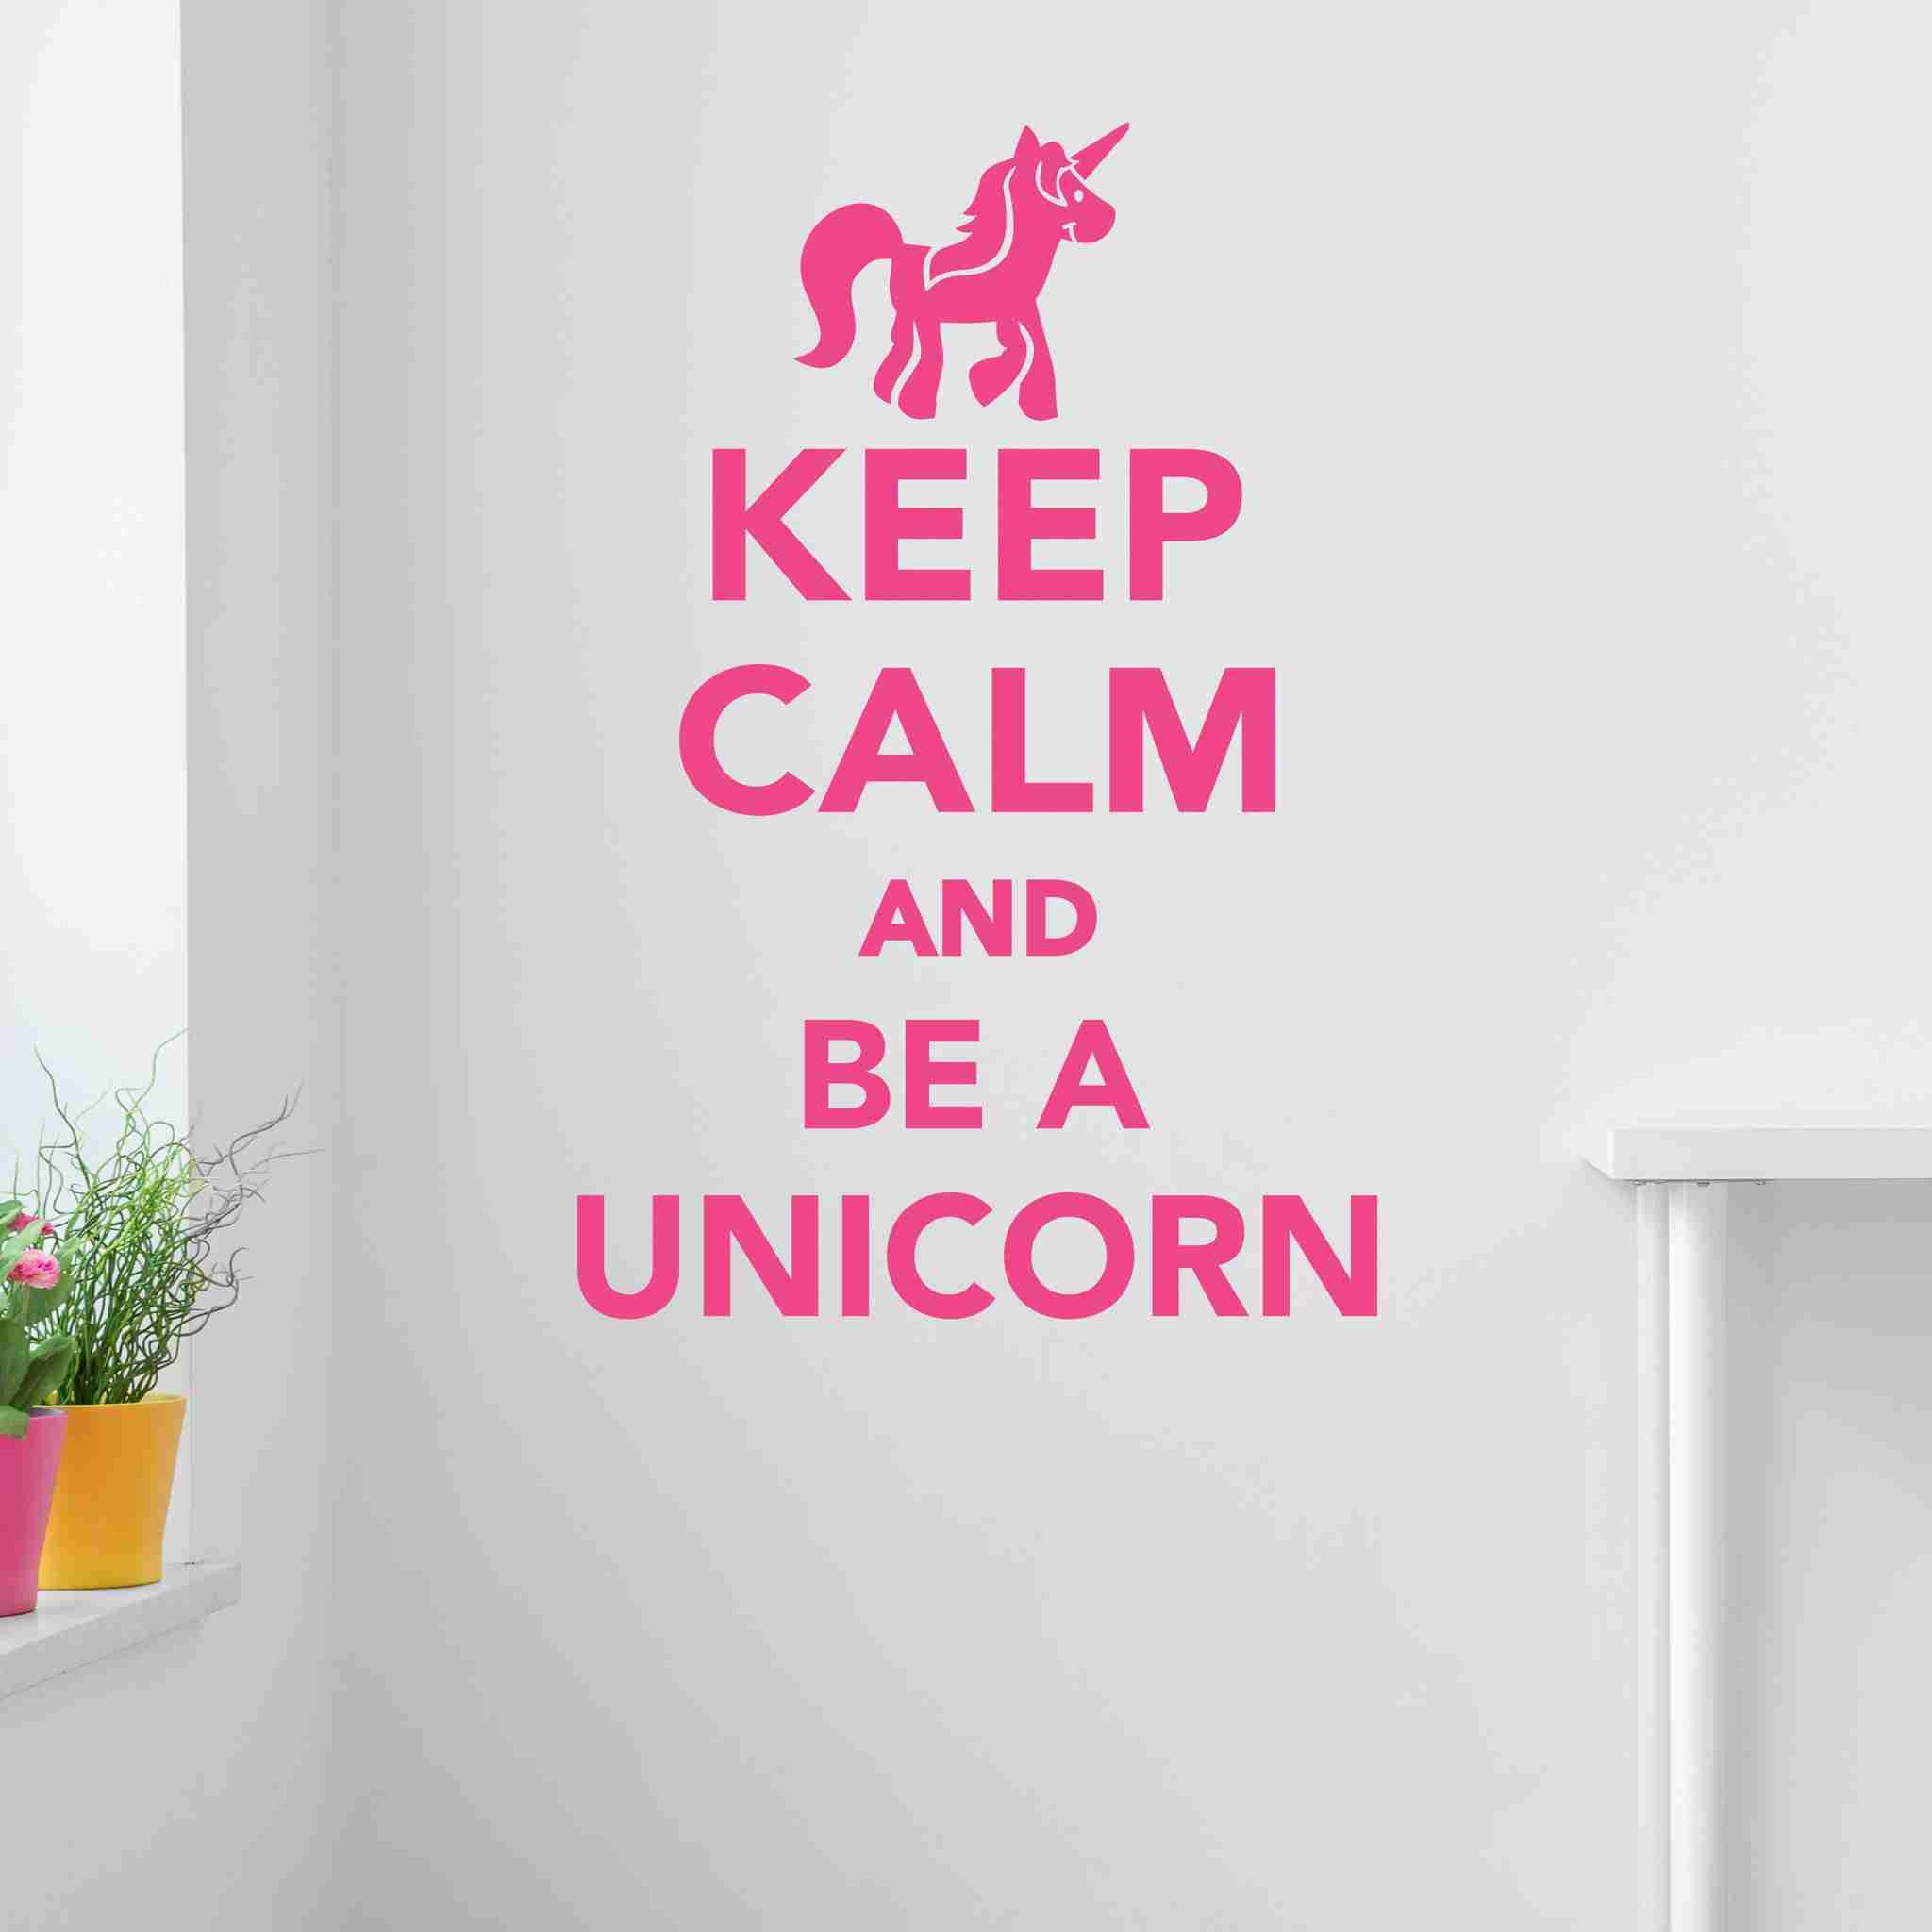 Keep Calm And Be A Unicorn Wall Decal Sticker Vinyl Wall Art - How do you put up vinyl wall decals